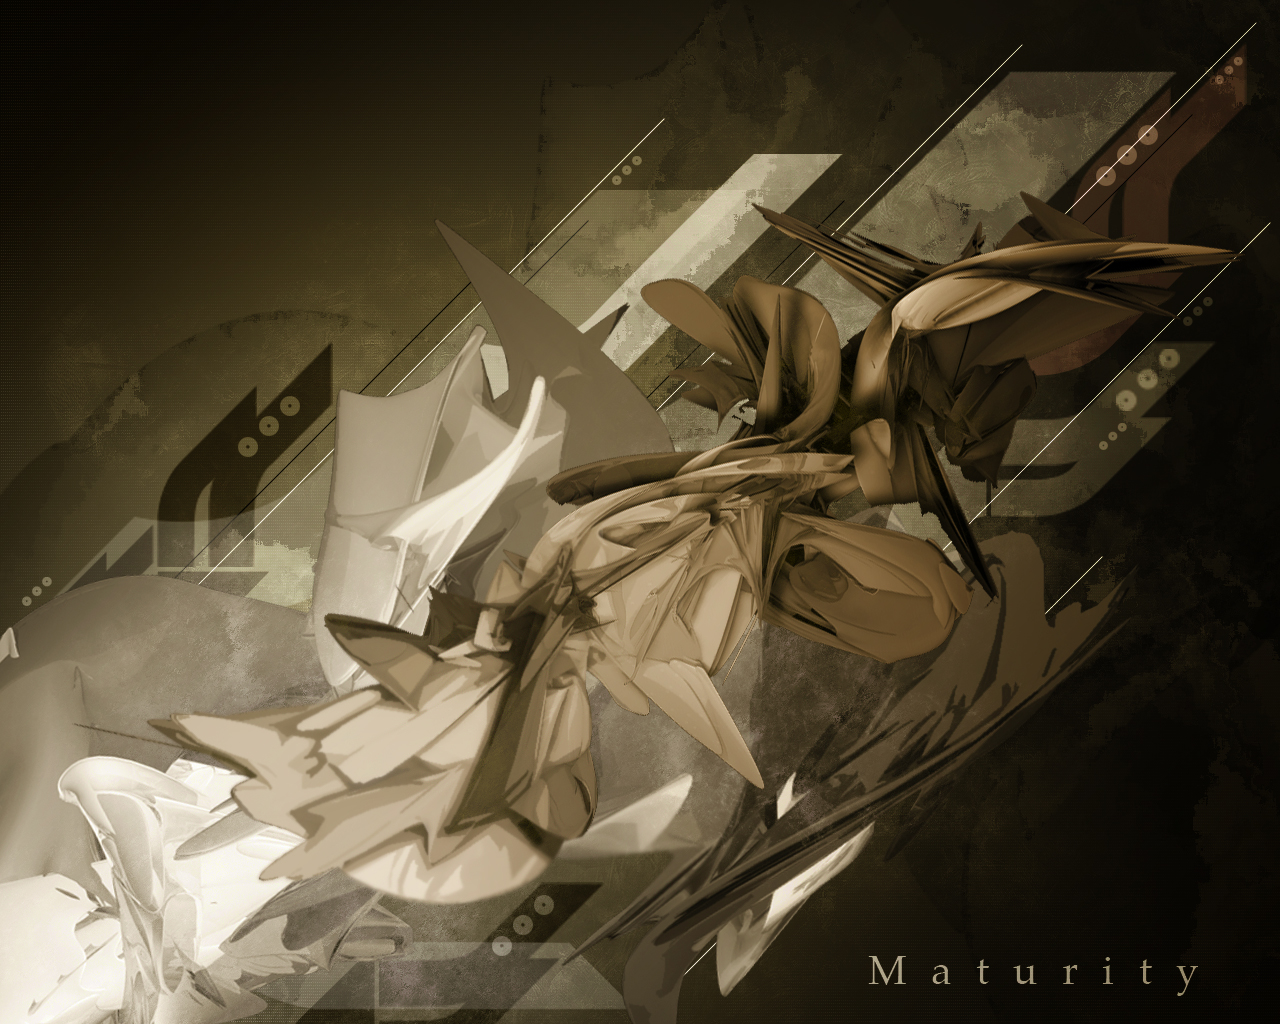 Maturity by aziroth